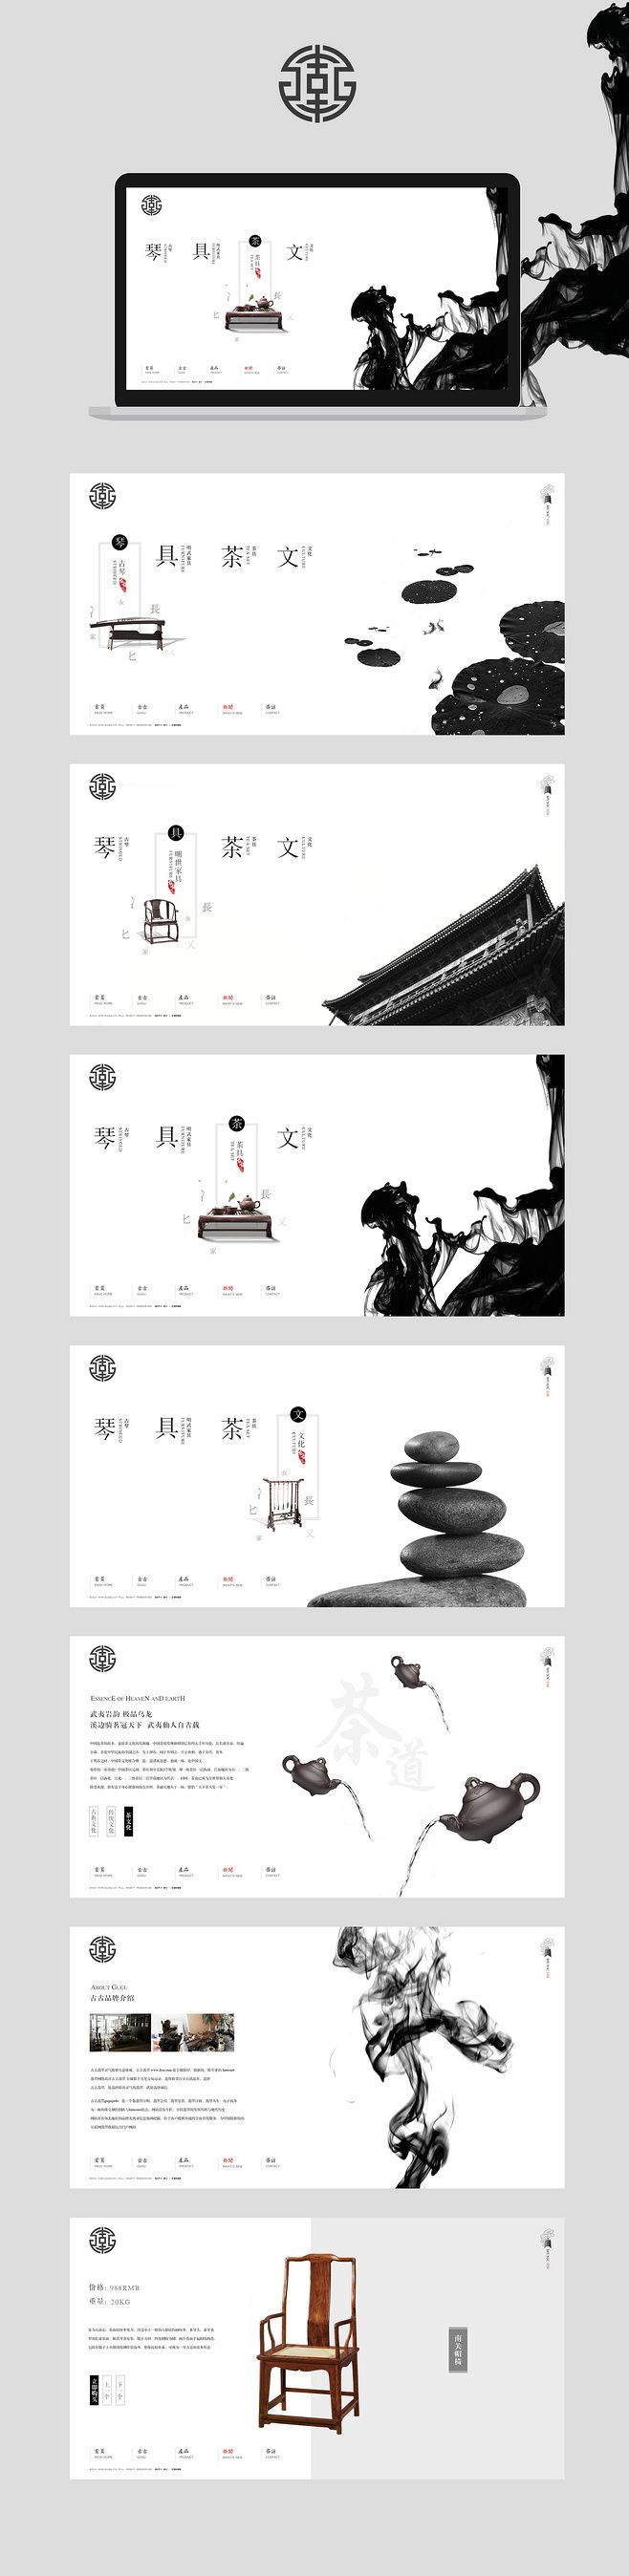 Monochrome high-contrast web design.